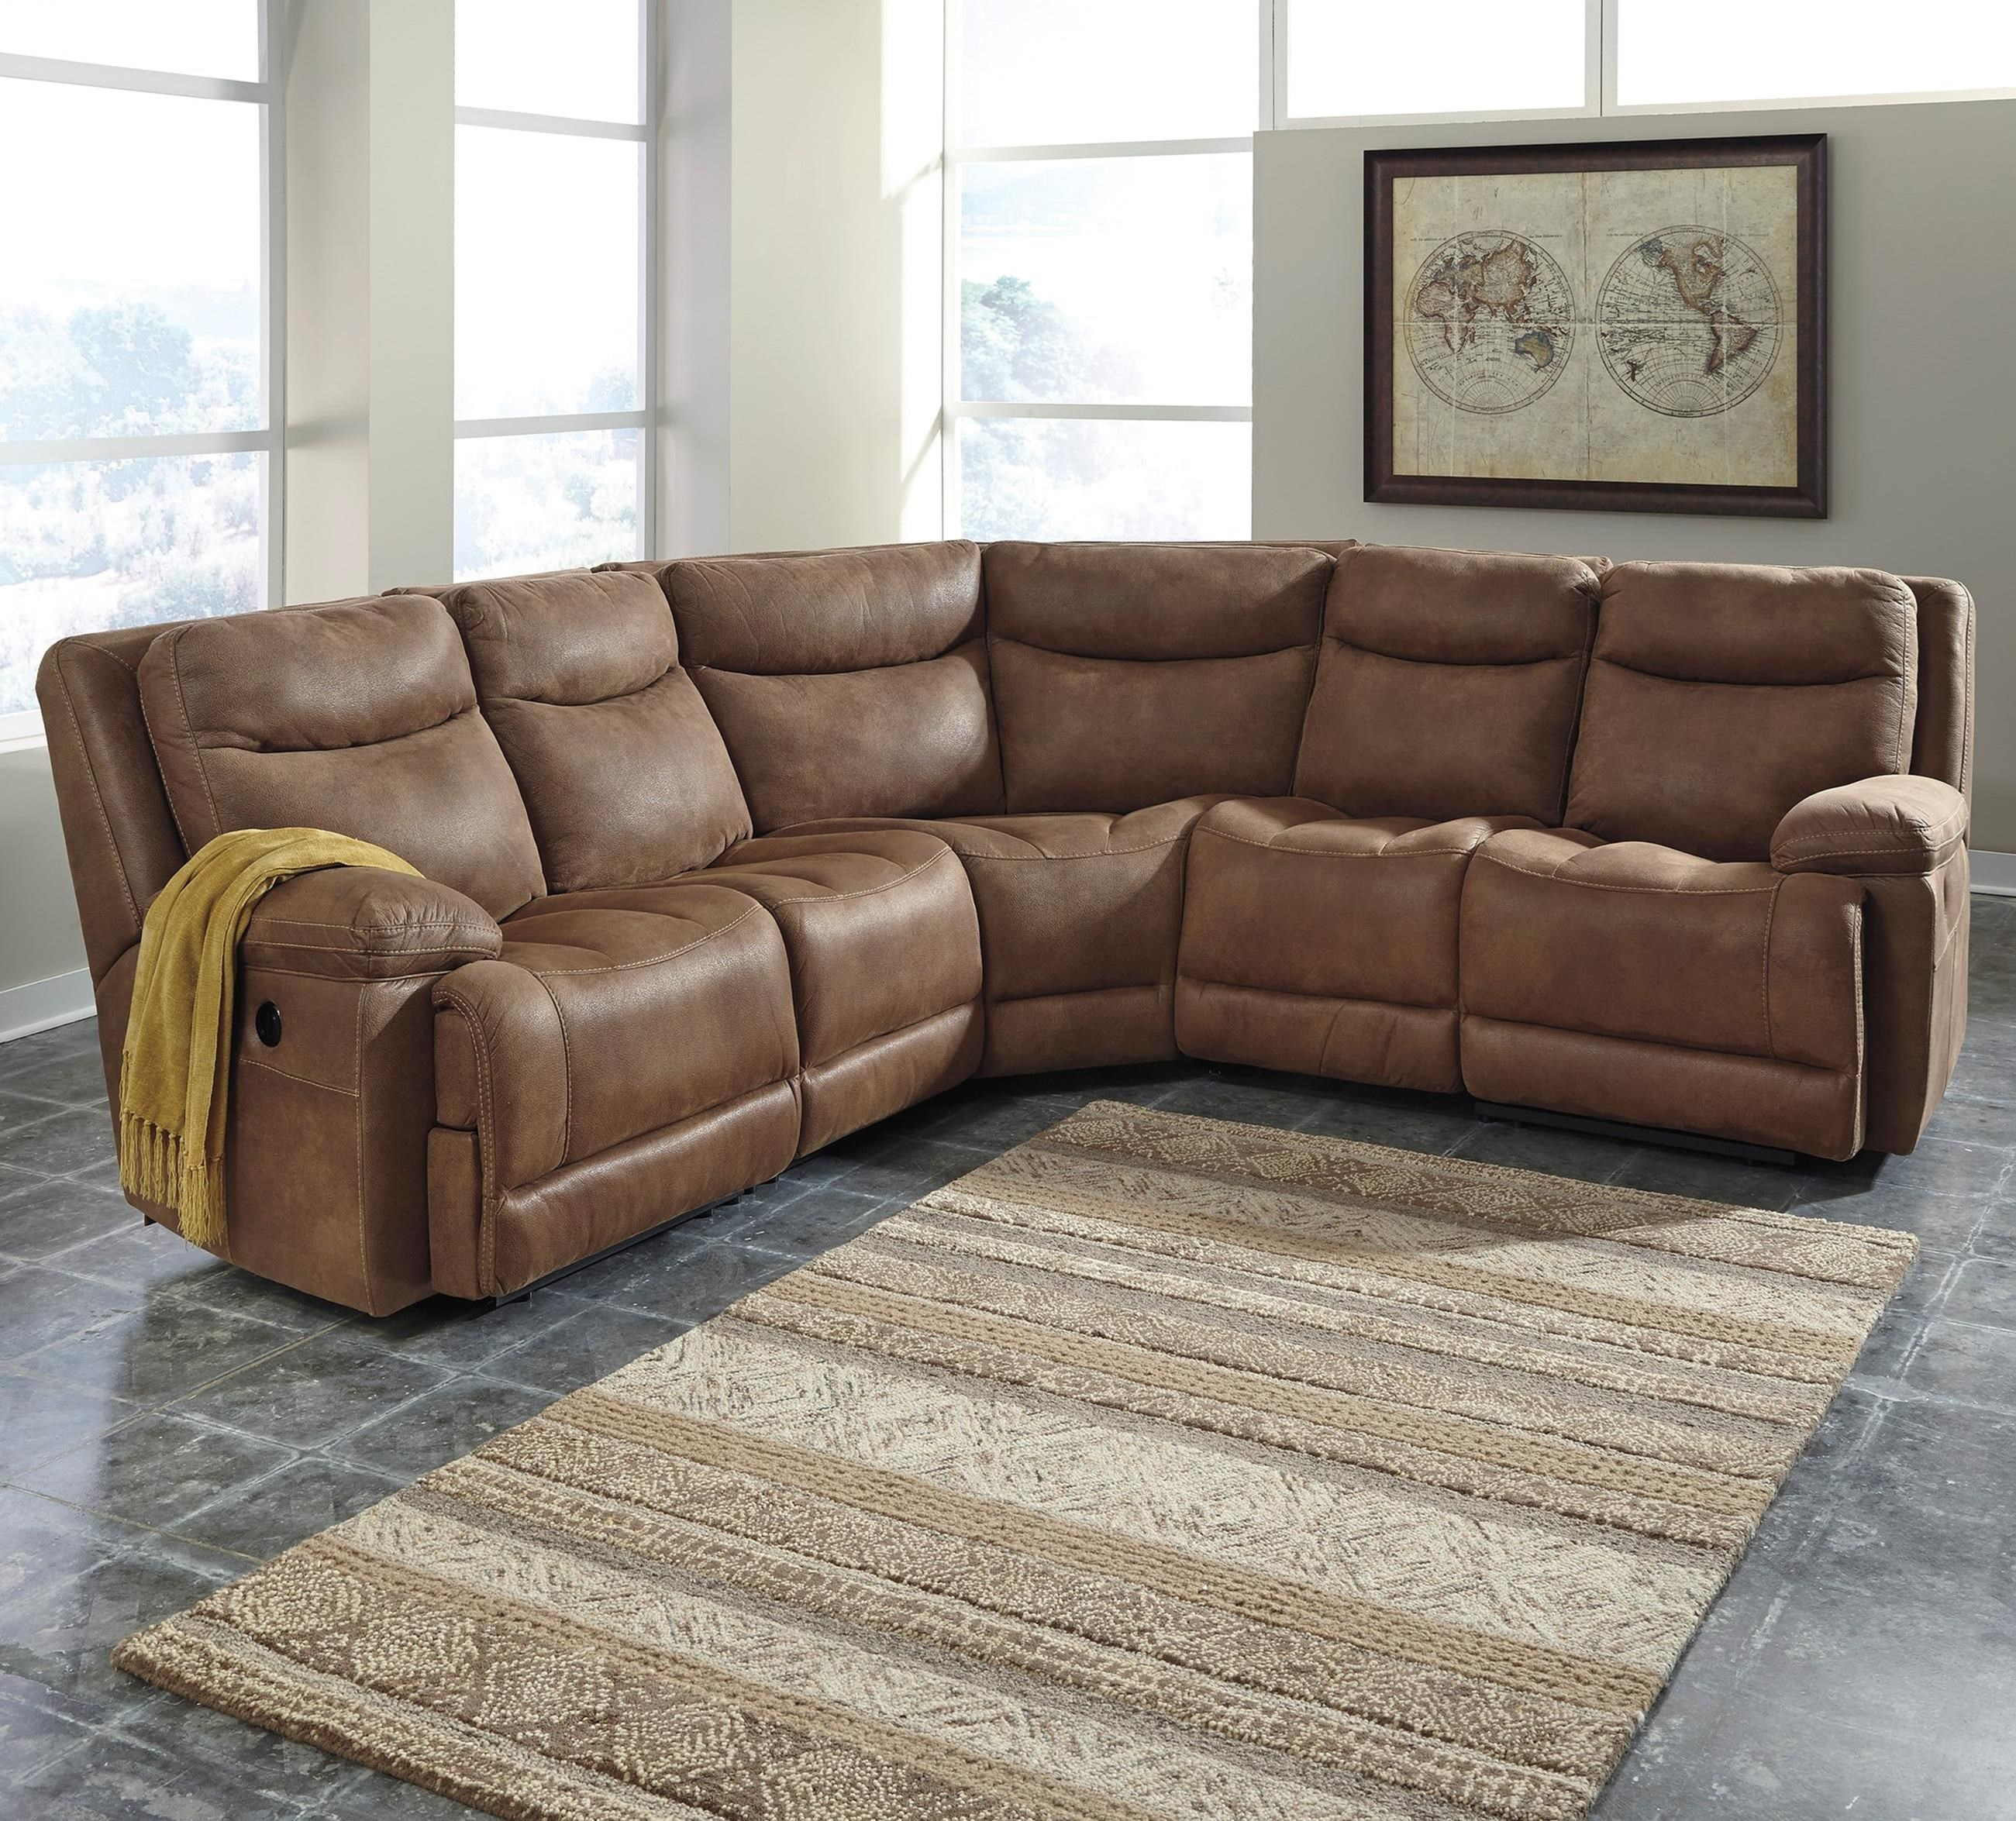 Signature Design by Ashley Valto 5-Piece Reclining Sectional - Item Number: 7940040+2x46+77+41